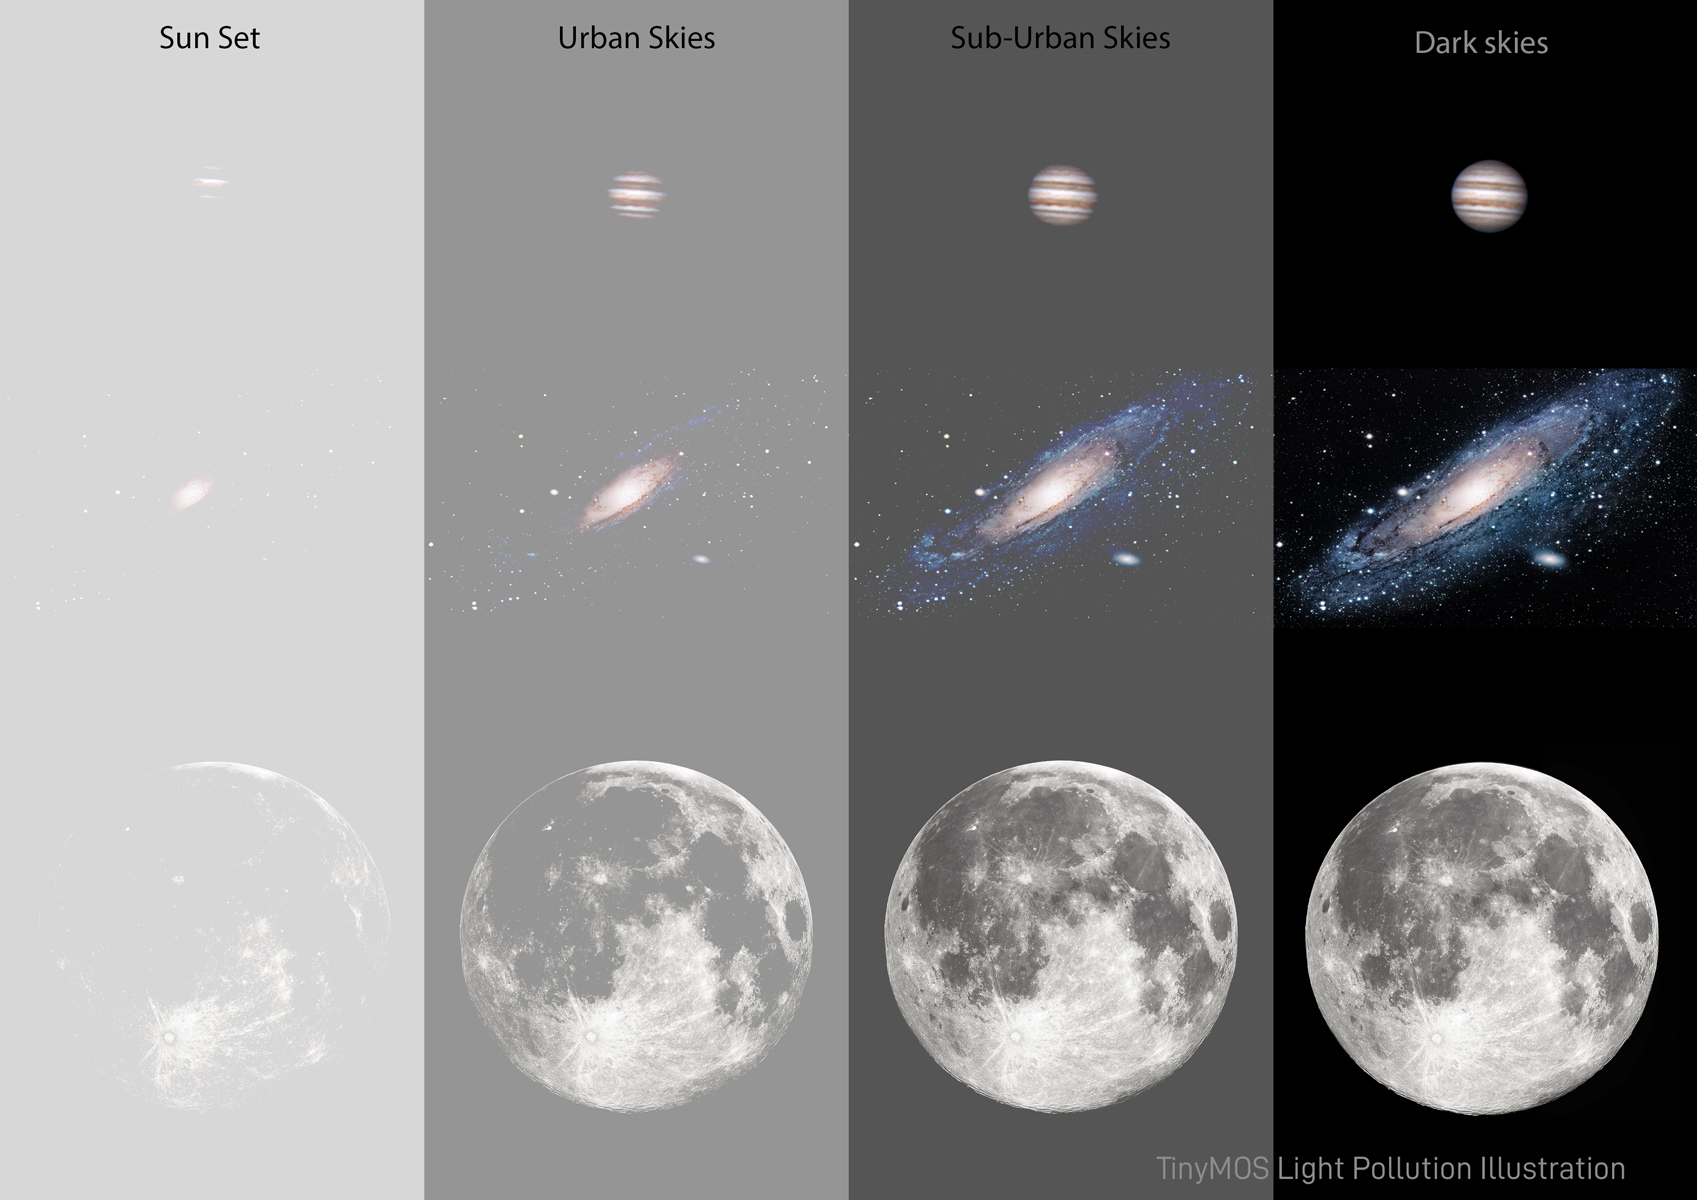 """Bright objects such as Planets and the Moon are easily observable and imaged in city environments. However nebulae and galaxies have much lower surface brightness. Note the disappearing """"limbs"""" of Andromeda galaxy in bright sky conditions."""